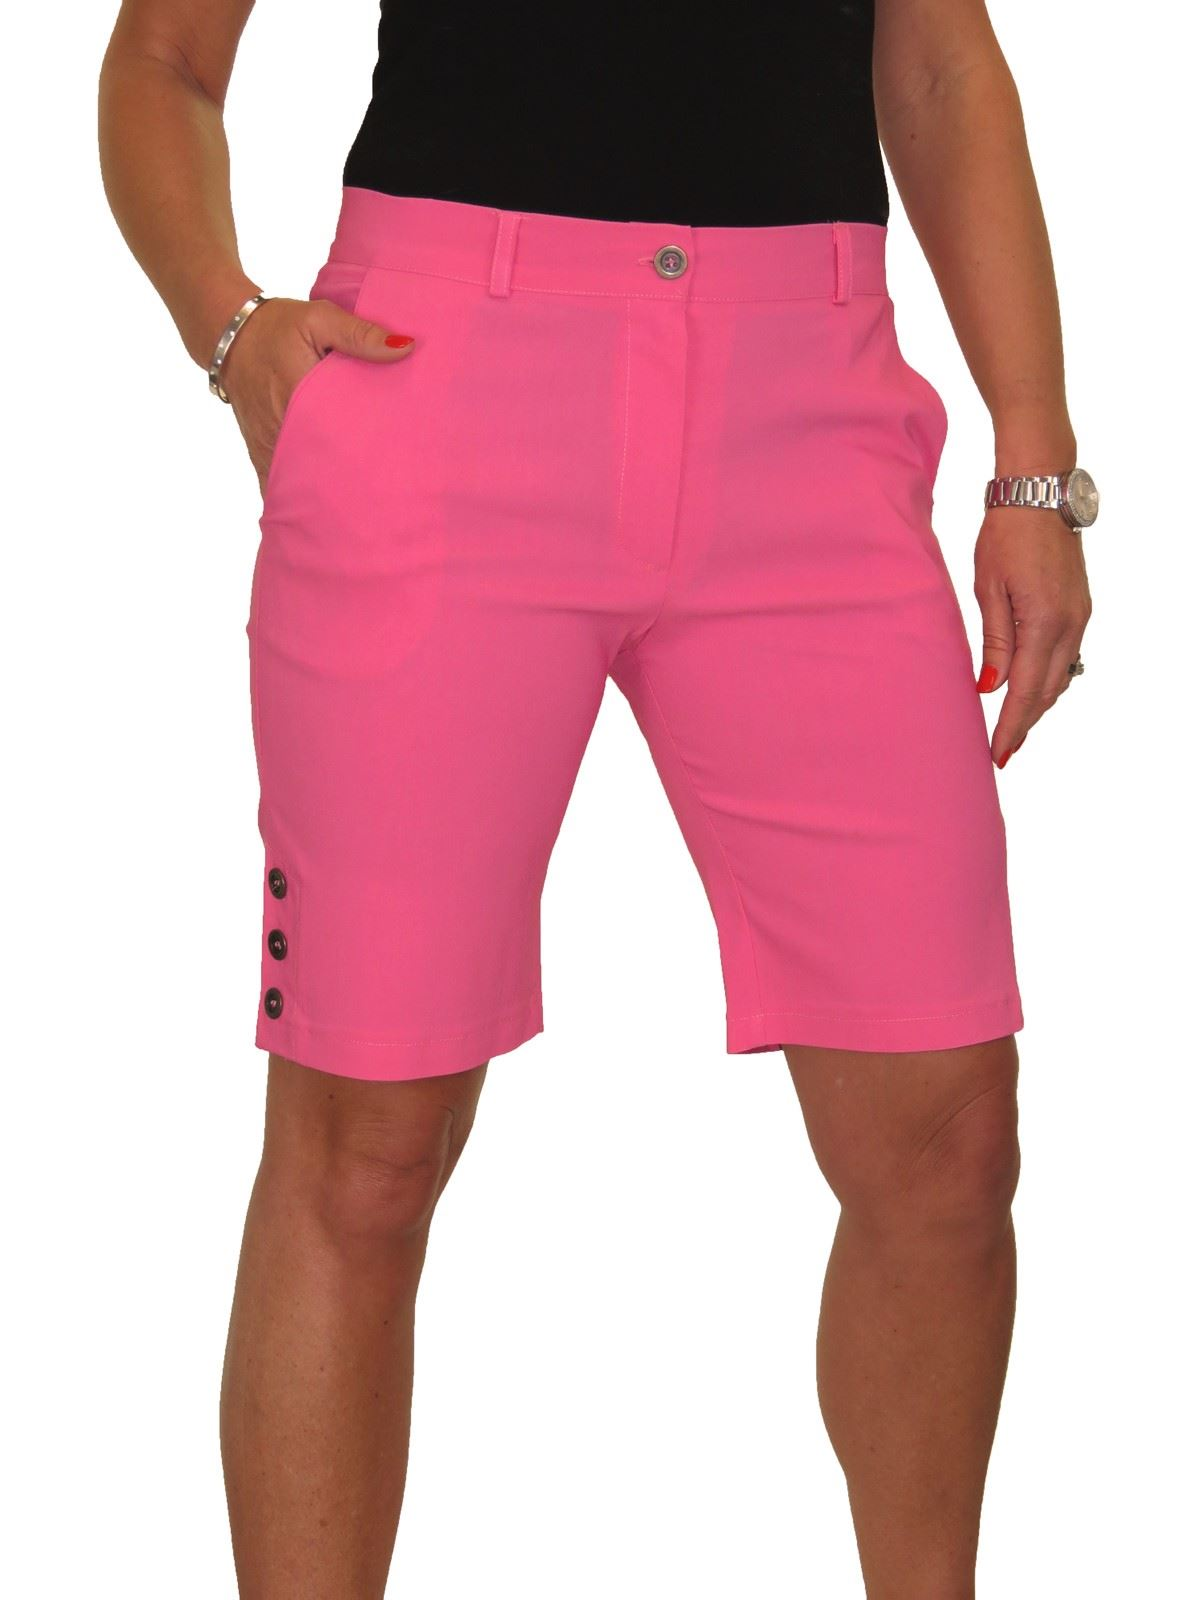 NEW Ladies Stretch Light Weight Shorts Mid Rise With Button Detail 8-22